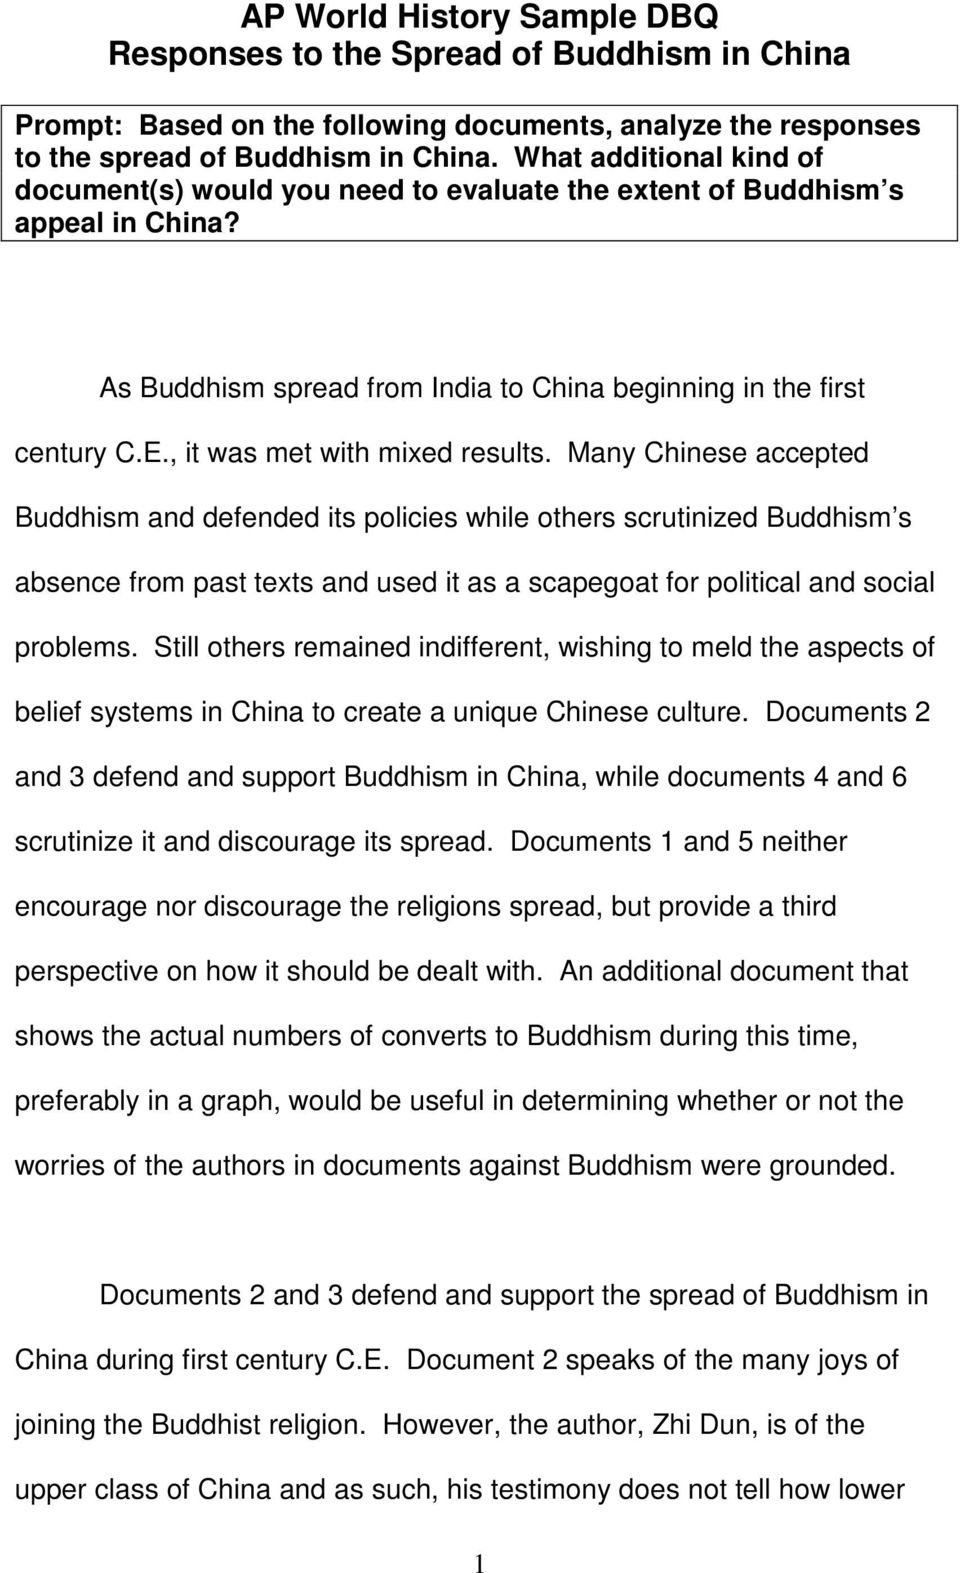 Essay buddhism in china dbq how to write an interview for a newspaper article